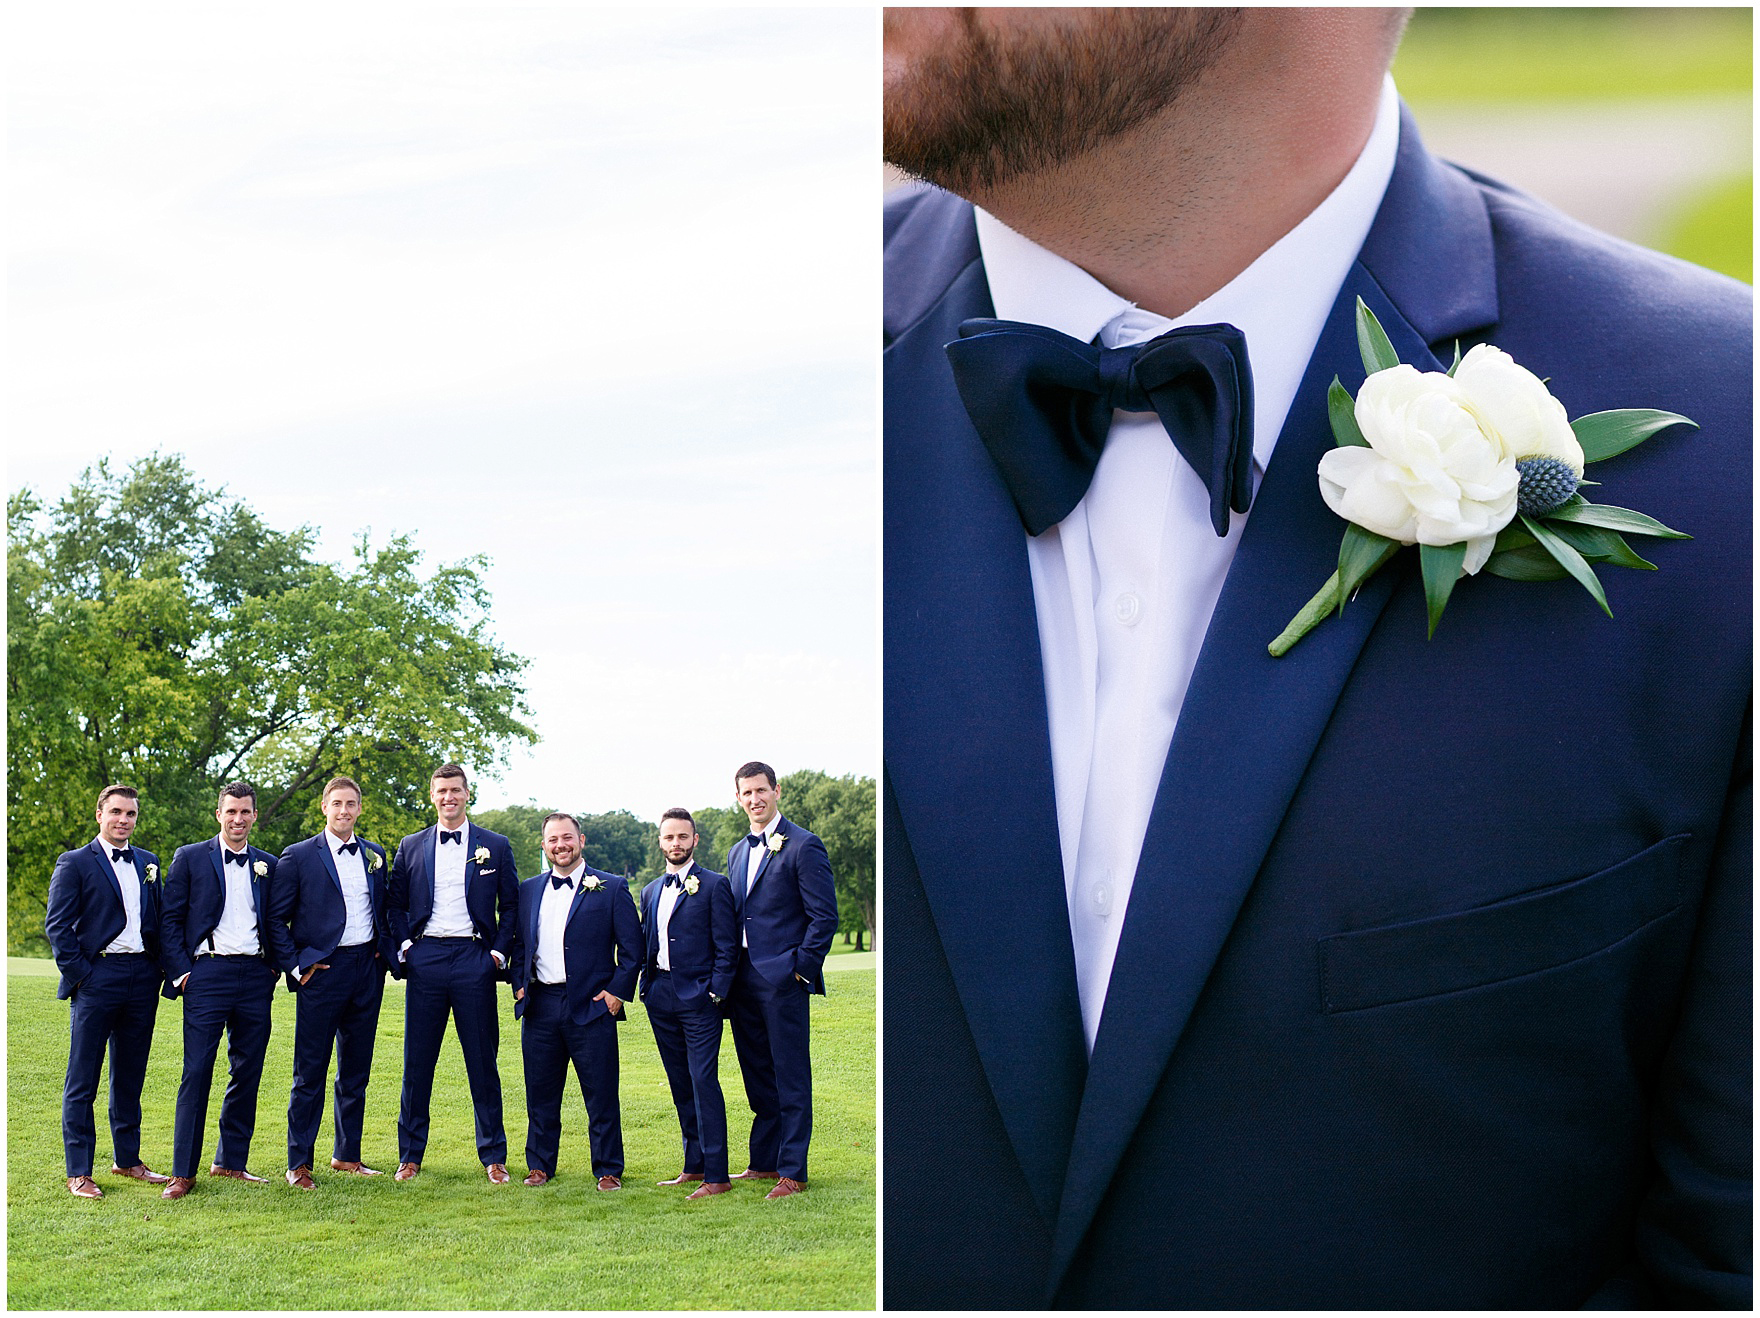 The groomsmen pose during a Biltmore Country Club Barrington wedding.